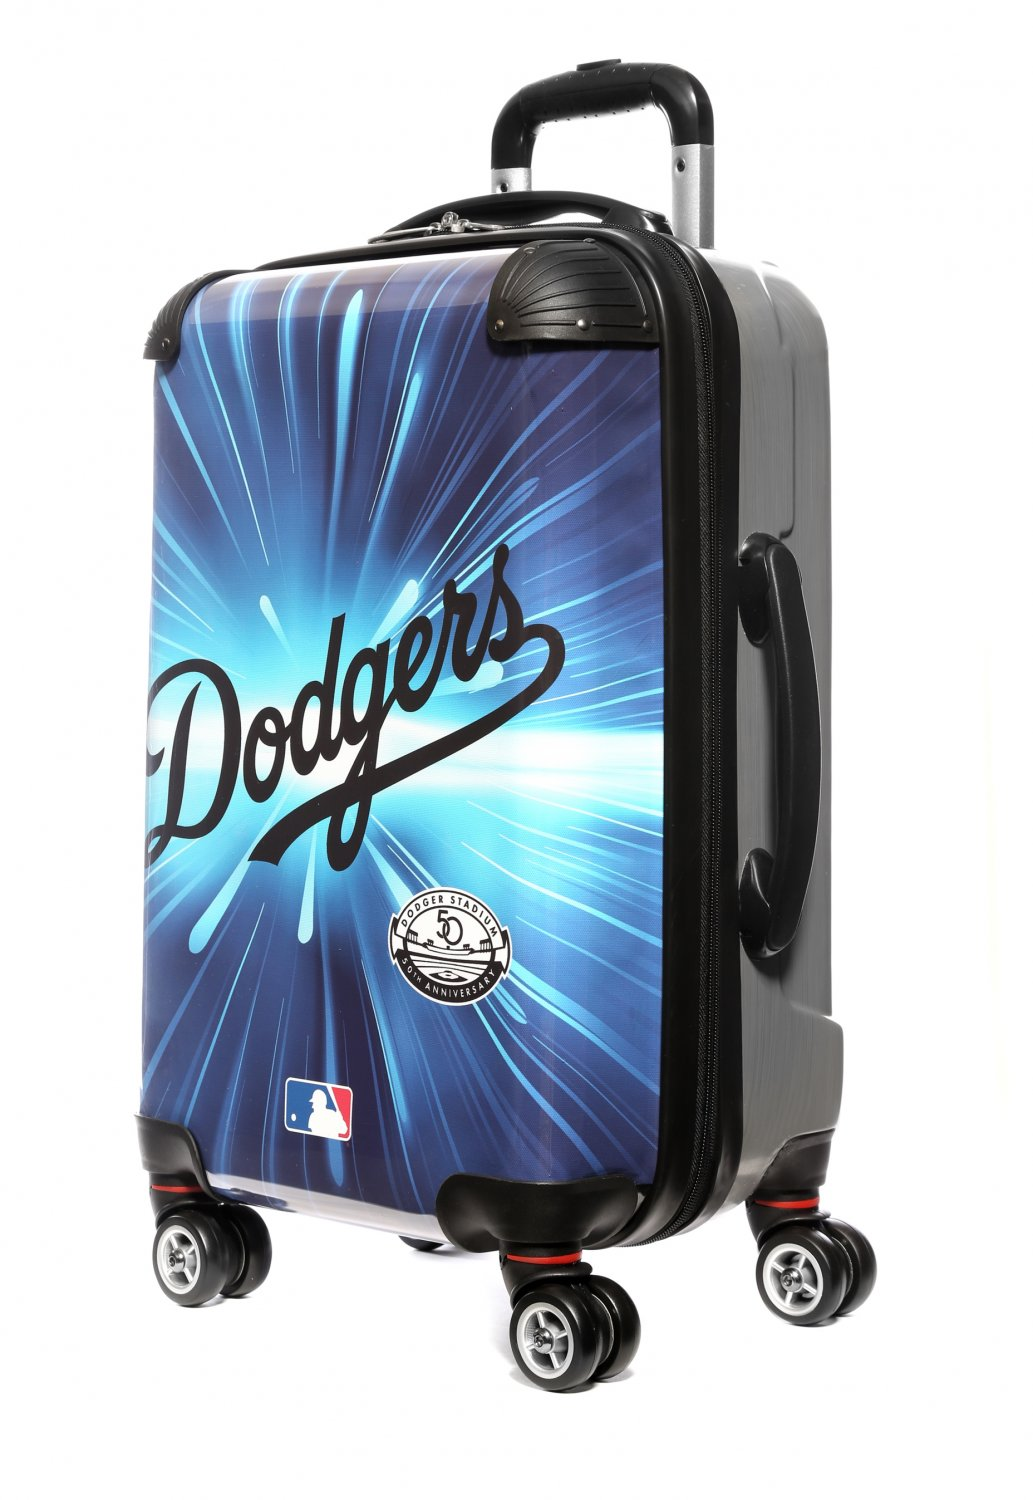 """Los Angeles Dodgers, 21"""" Clear Poly Carry-On Luggage by Kaybull #LAD5"""